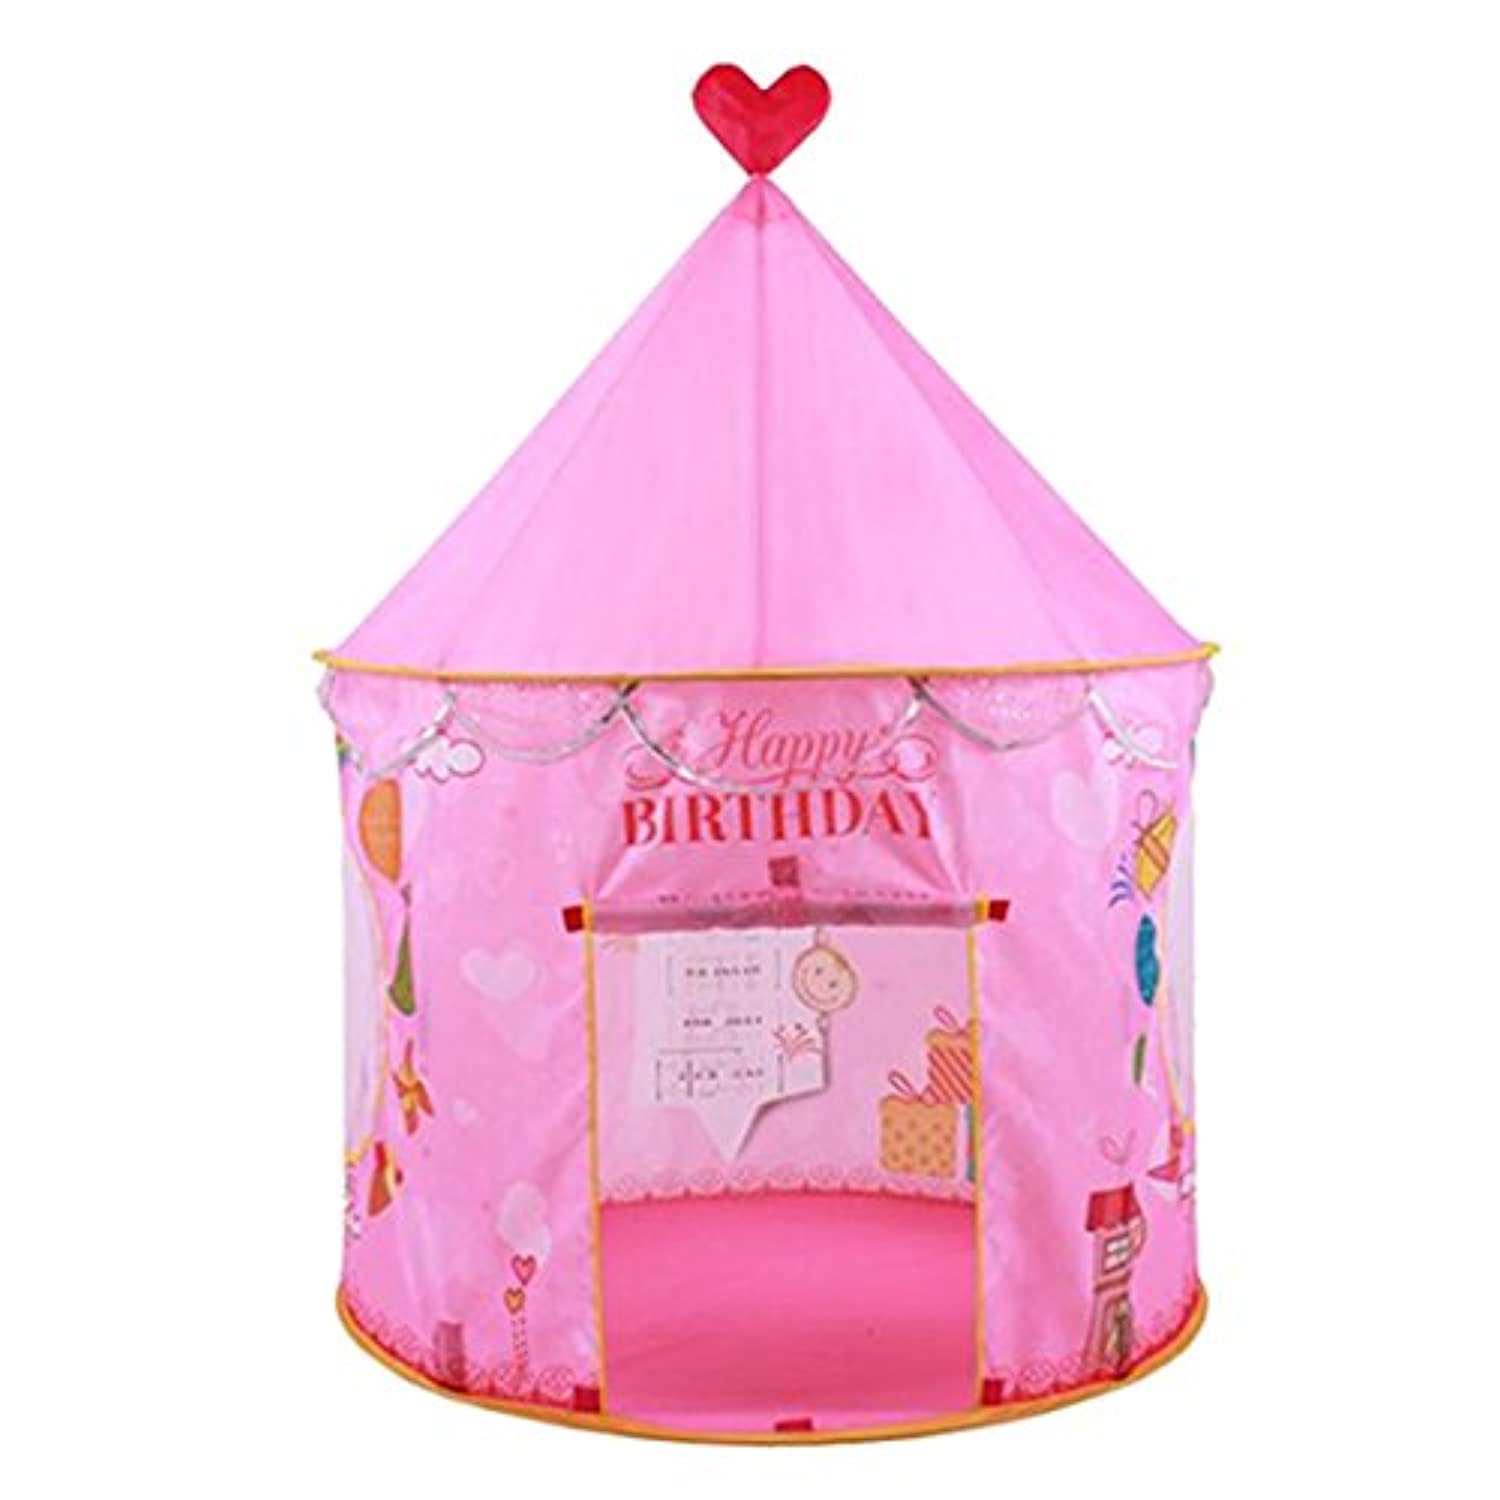 enerhu Indoor / Outdoor Kids Play Tents Boy Girl Children Play ShadeビーチGraden公園パーティー49.21 x40.55」ピンク